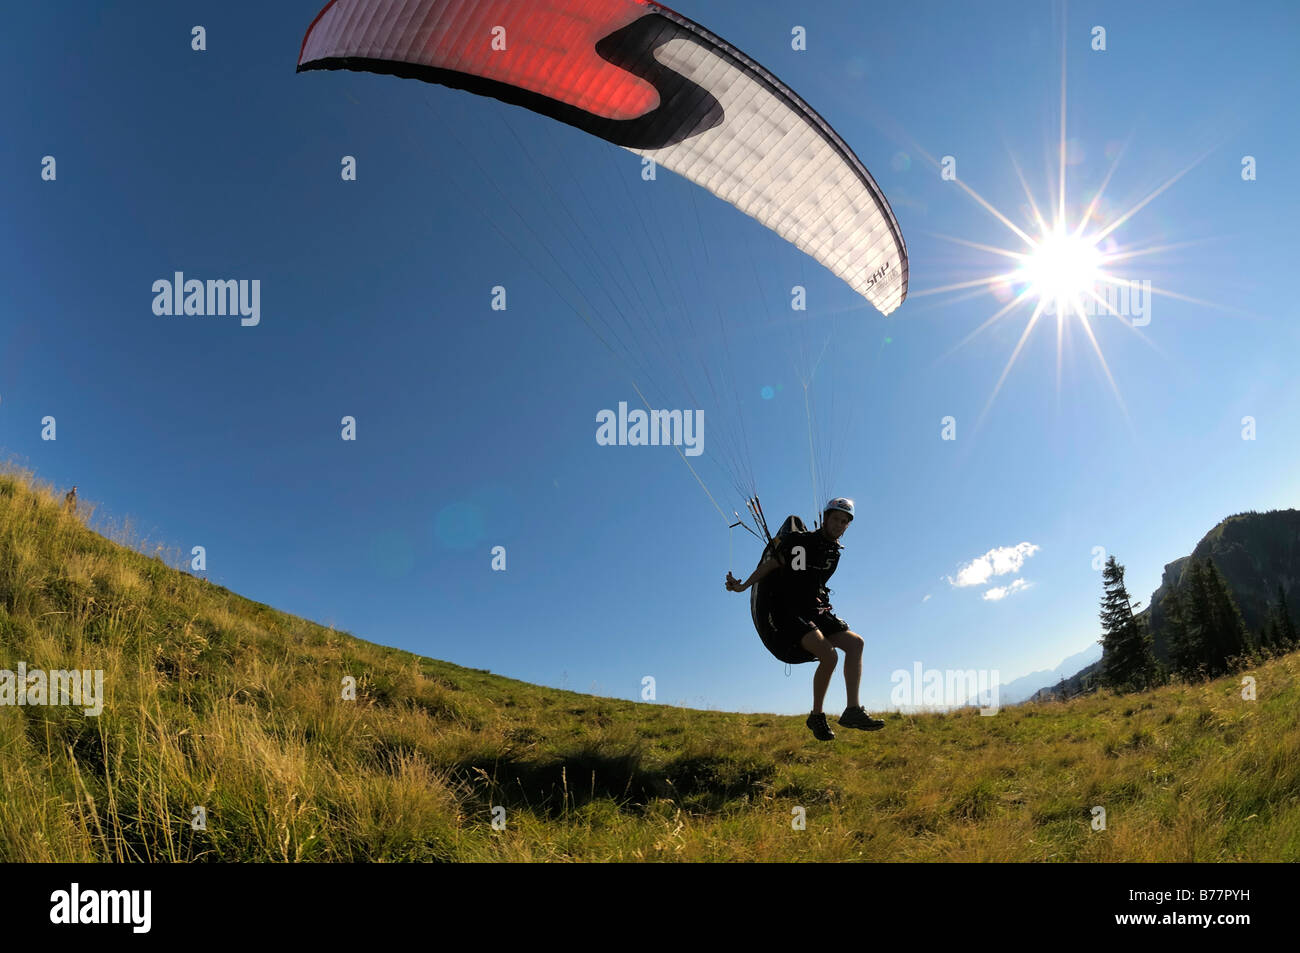 Paraglider taking off, backlit, wide-angle shot, Brauneck, Upper Bavaria, Germany, Europe Stock Photo